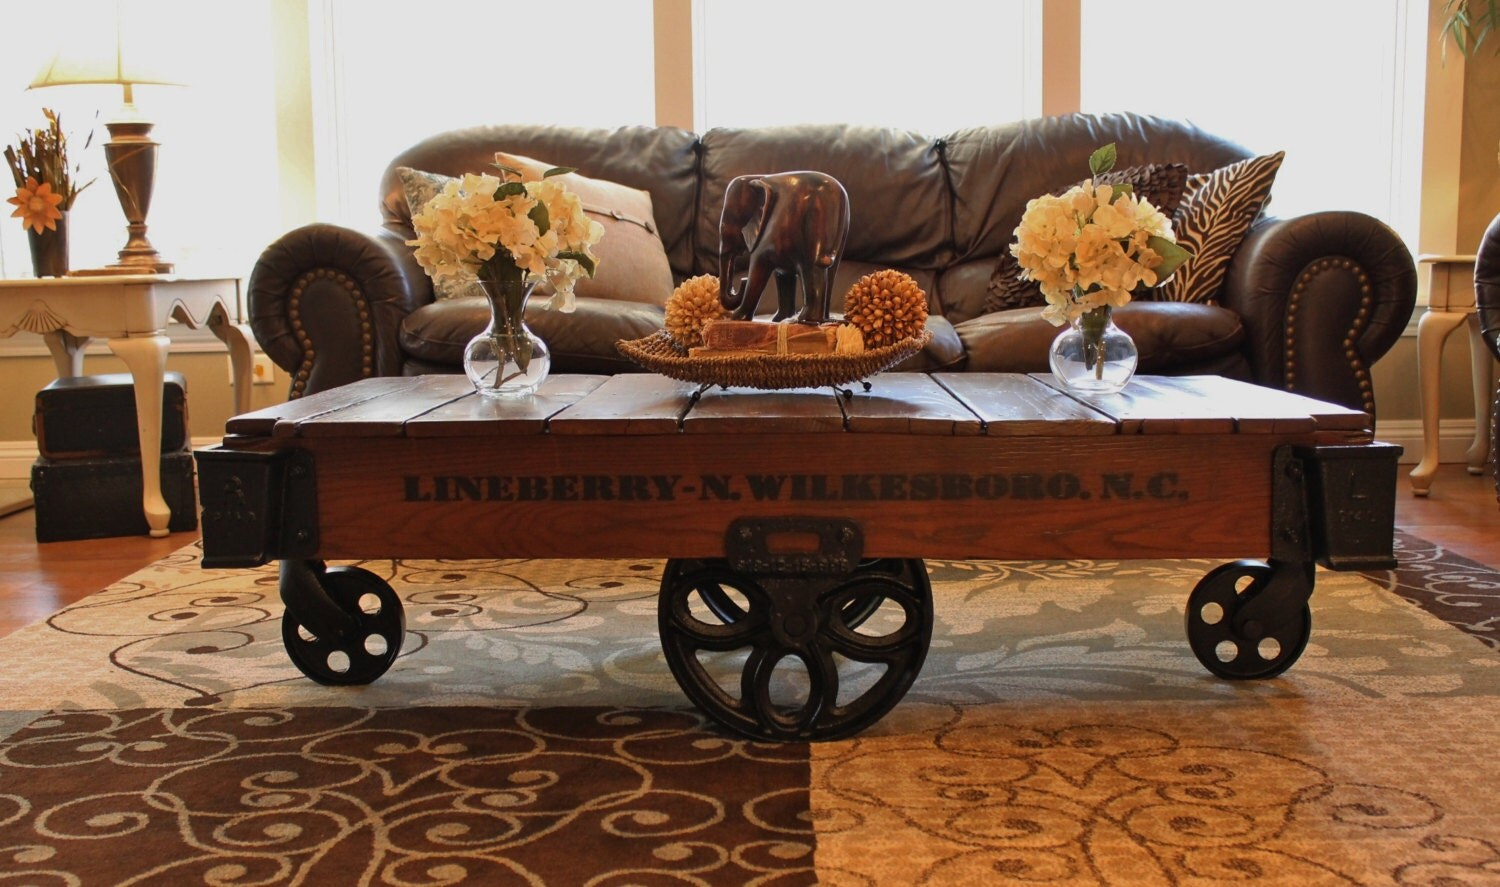 Vintage Restored Lineberry Factory Cart (Daisy Wheel